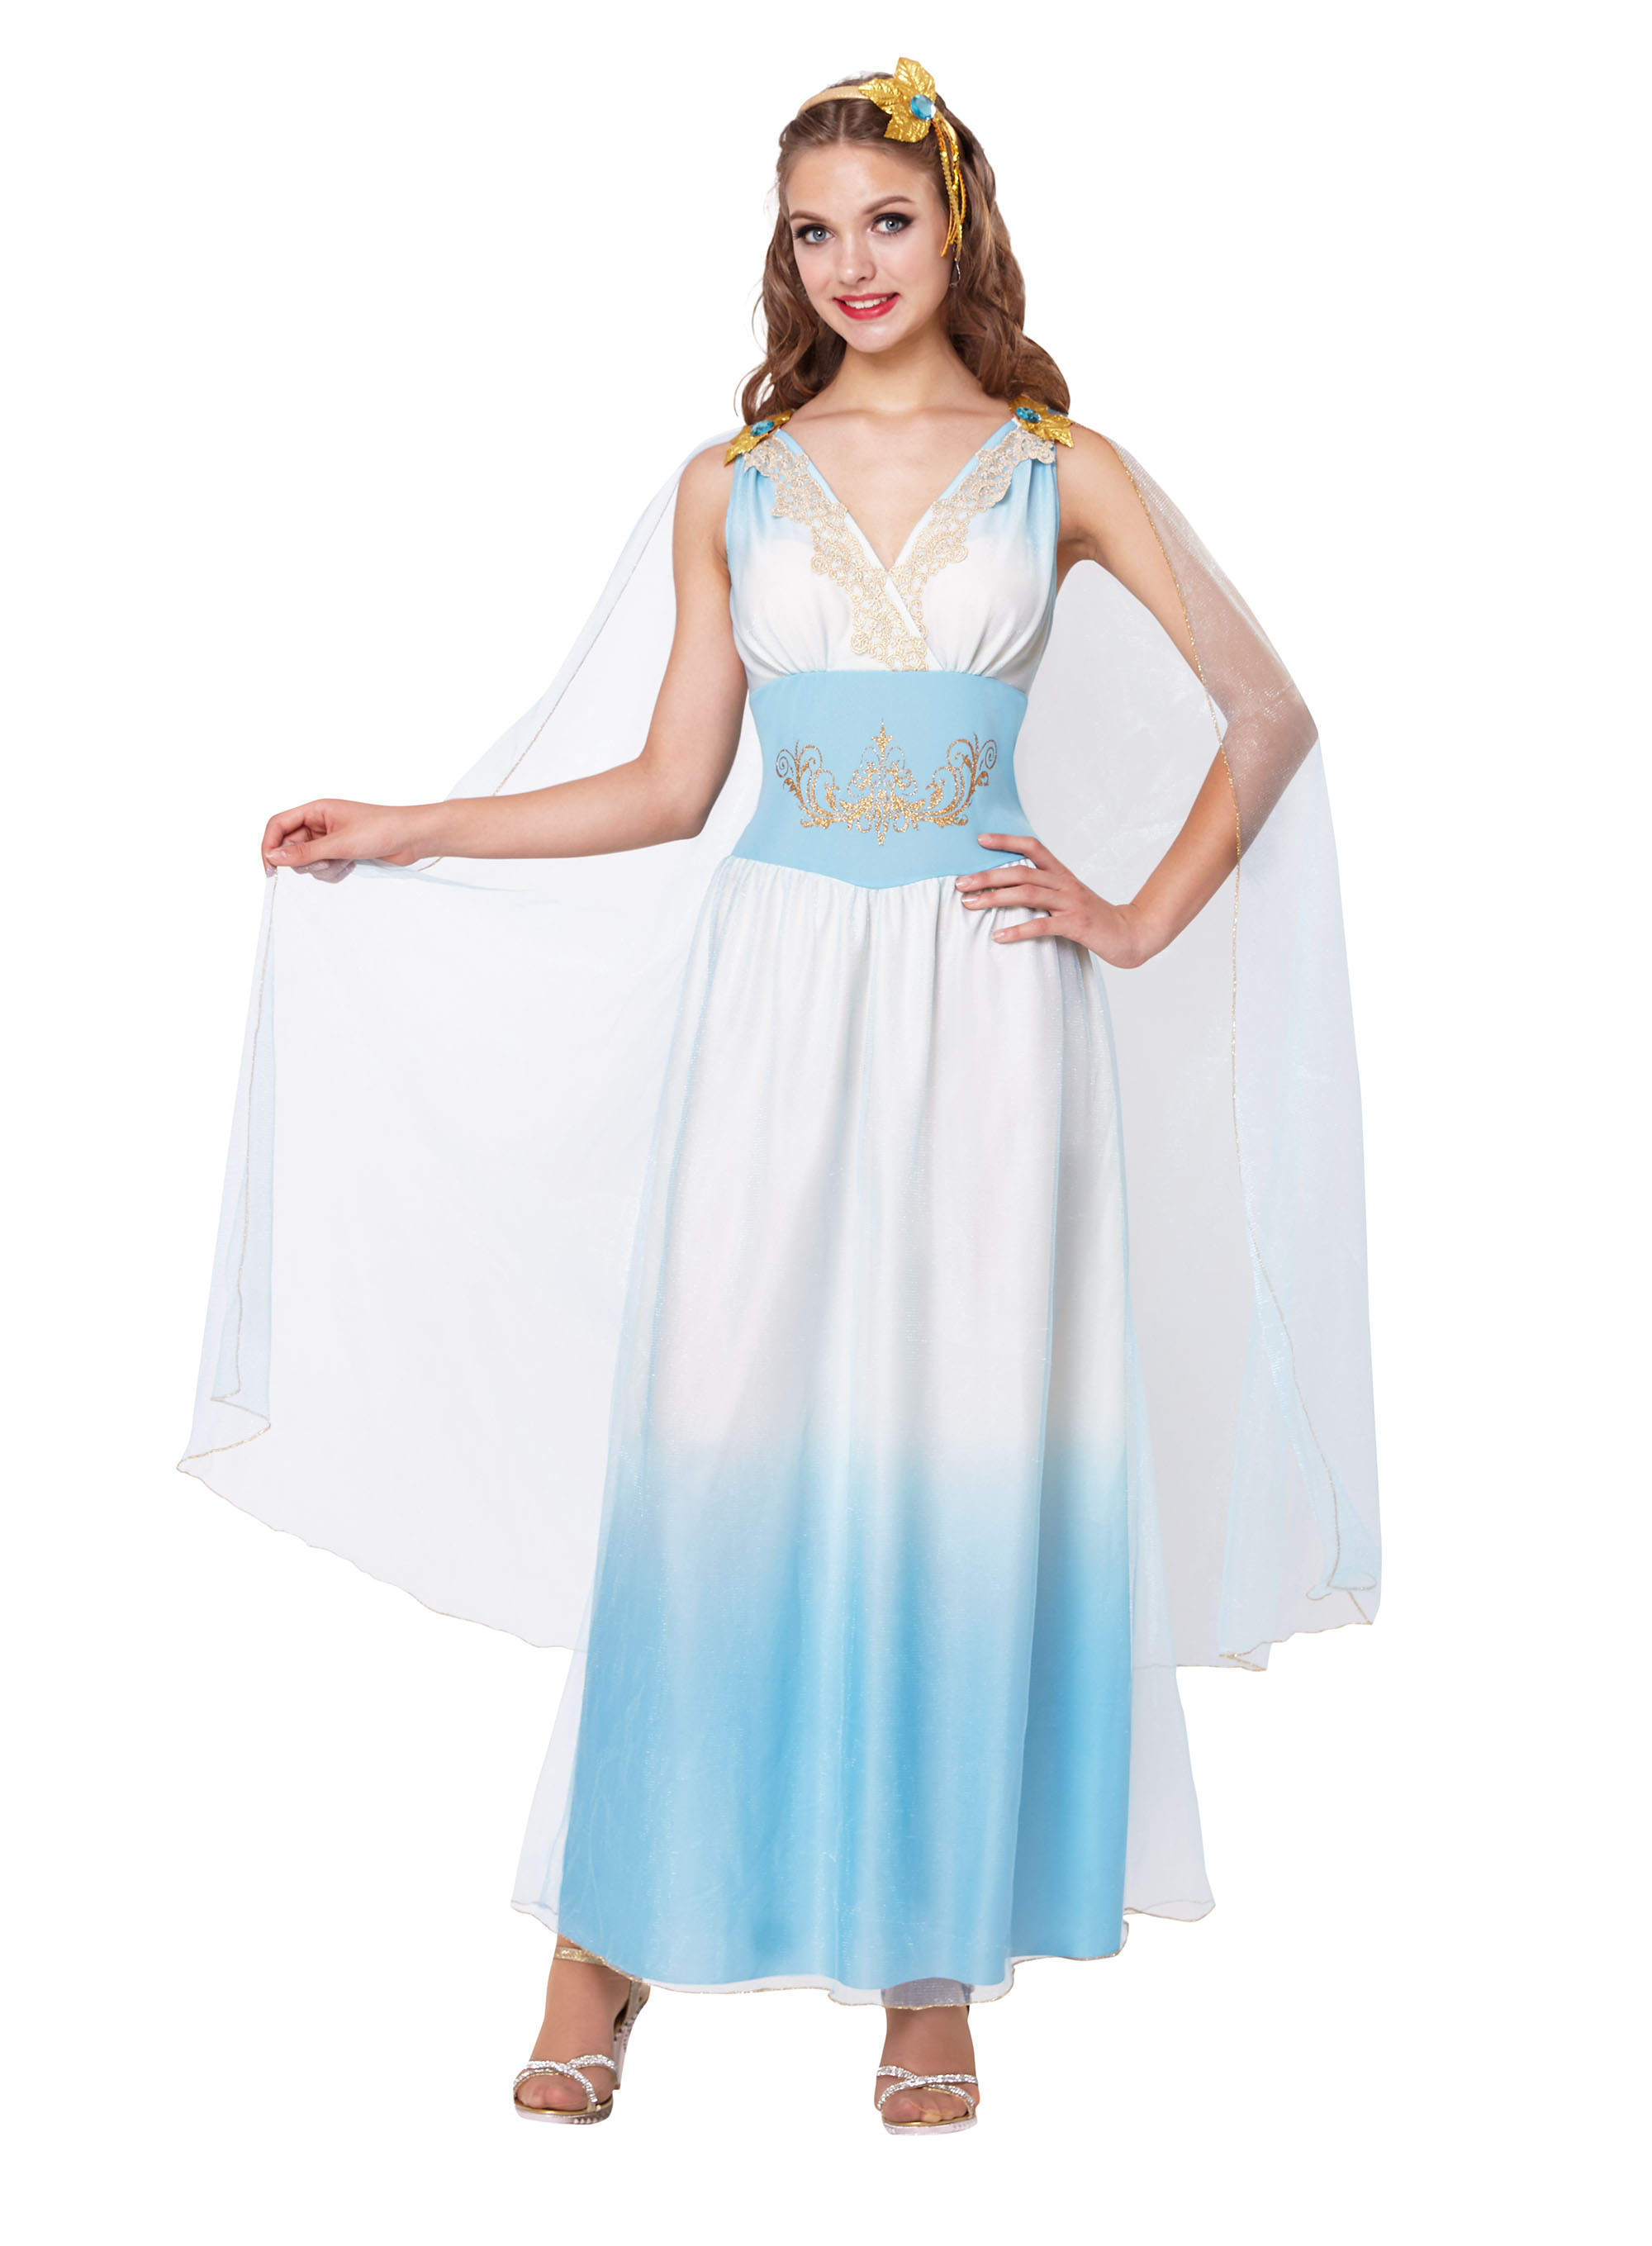 Roman Empress Fancy Dress Costume Outfit Womens Adult UK 10-12